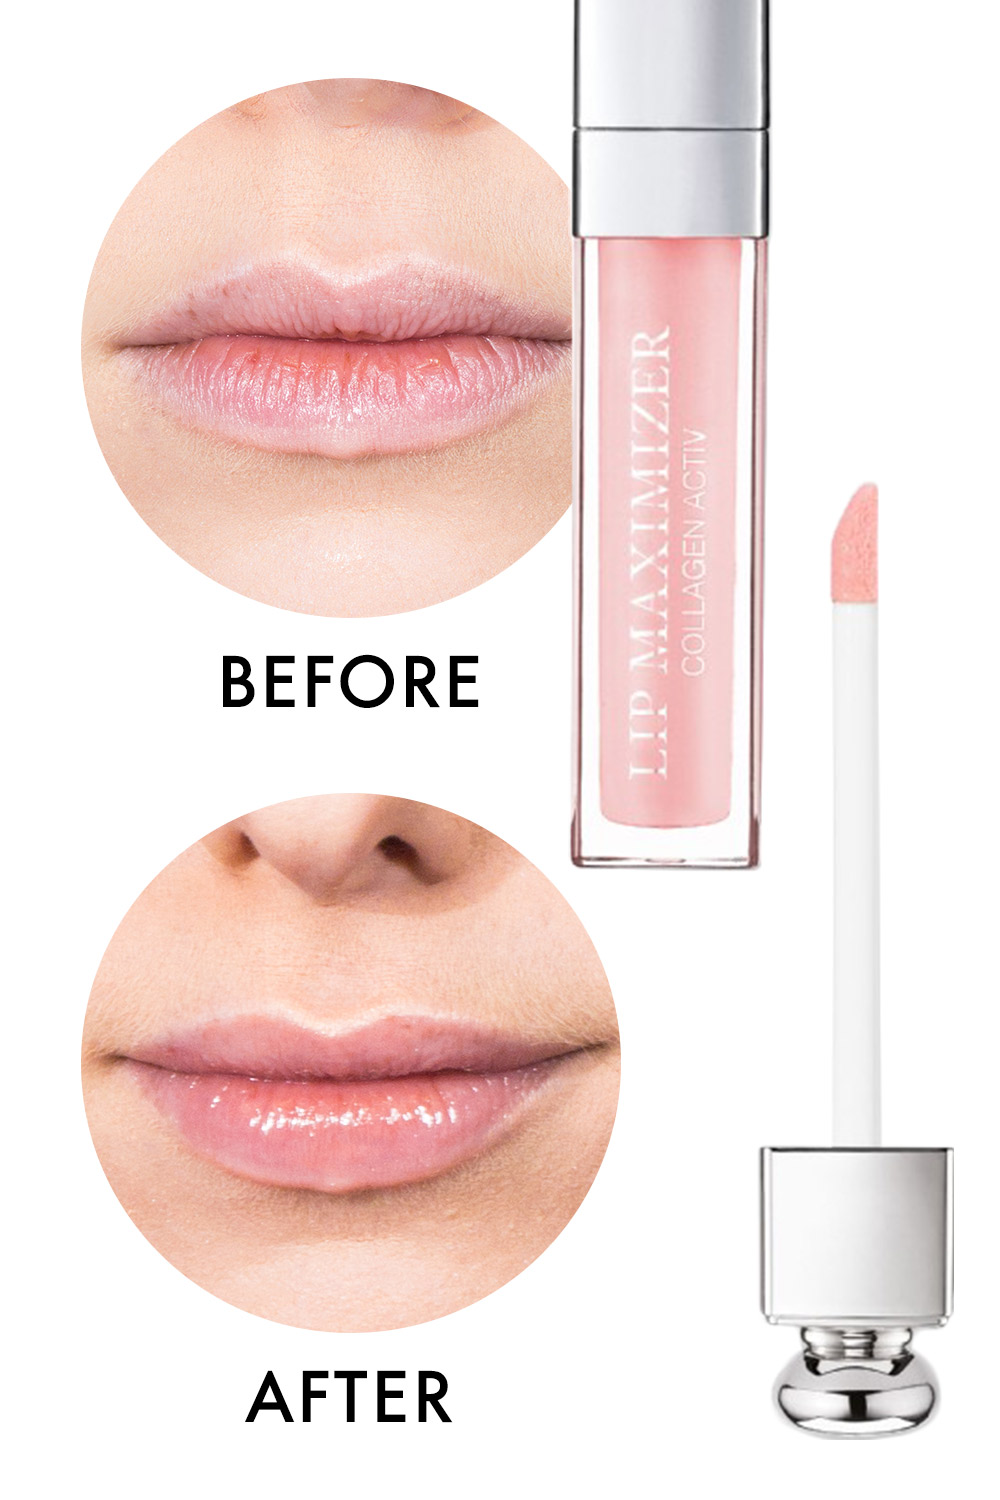 5 Best Lip Plumpers How To Get Plump Lips In Minutes